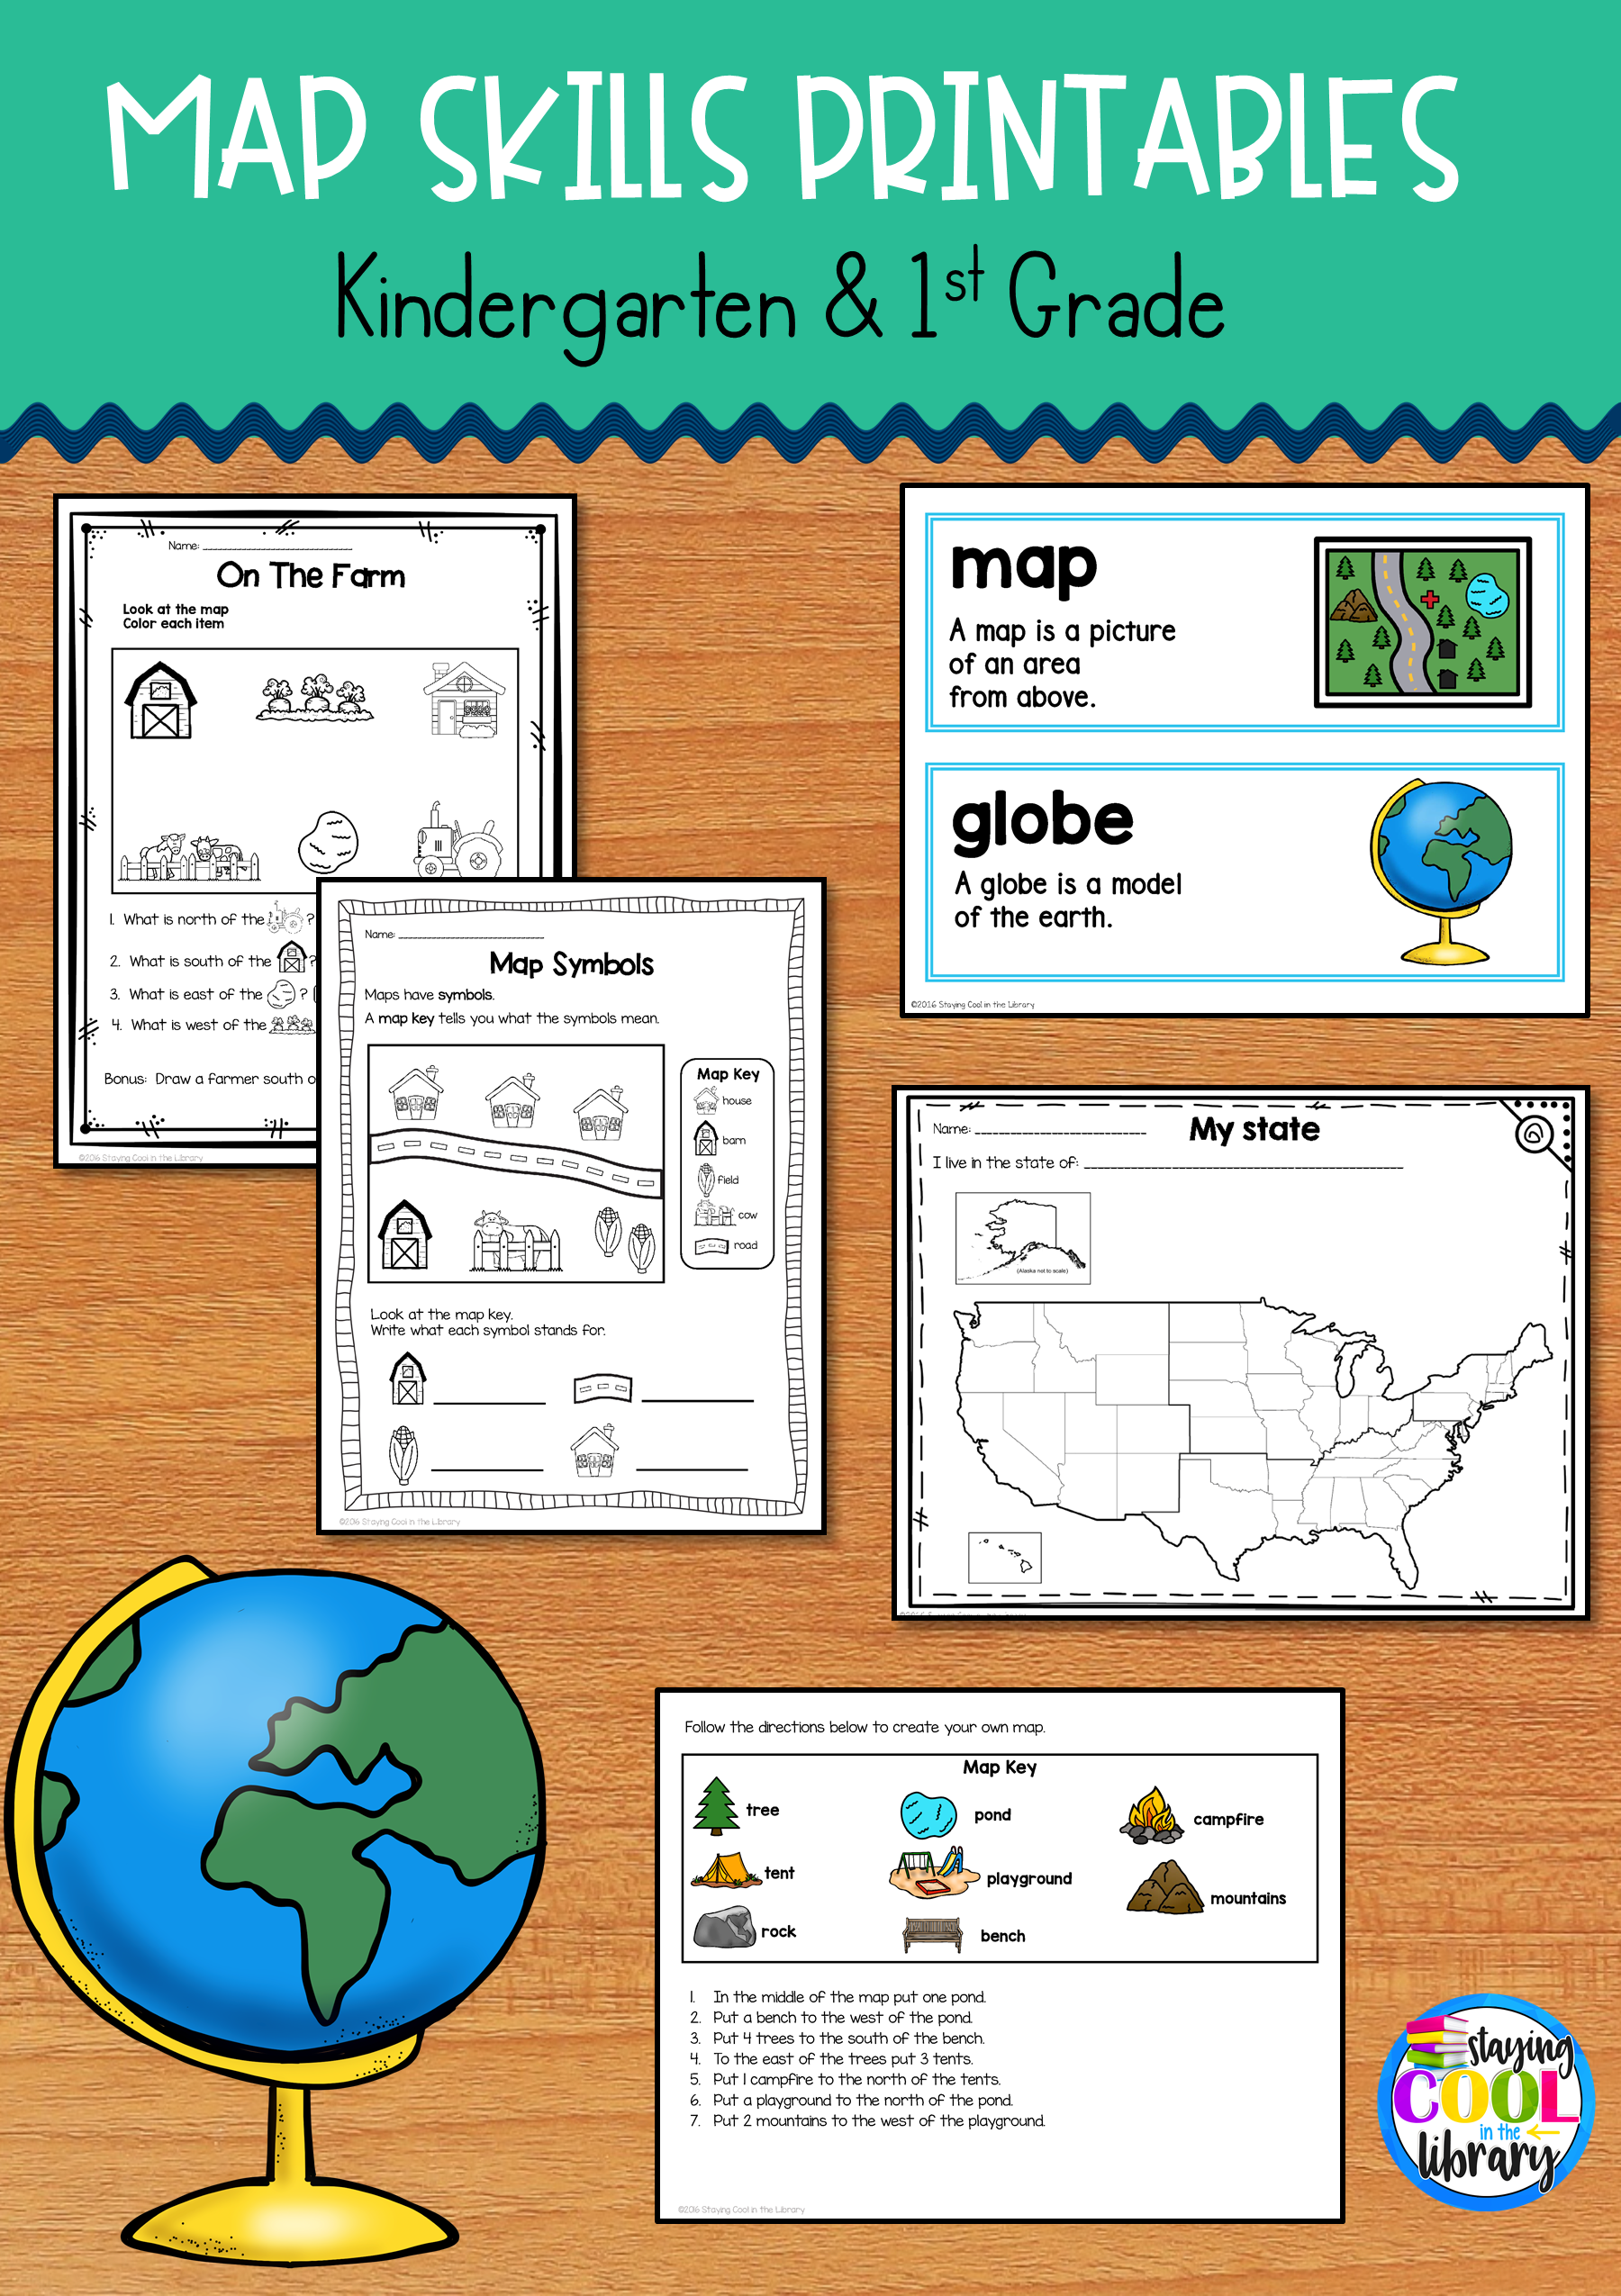 Map Skills Printables For Kindergarten And First Grade